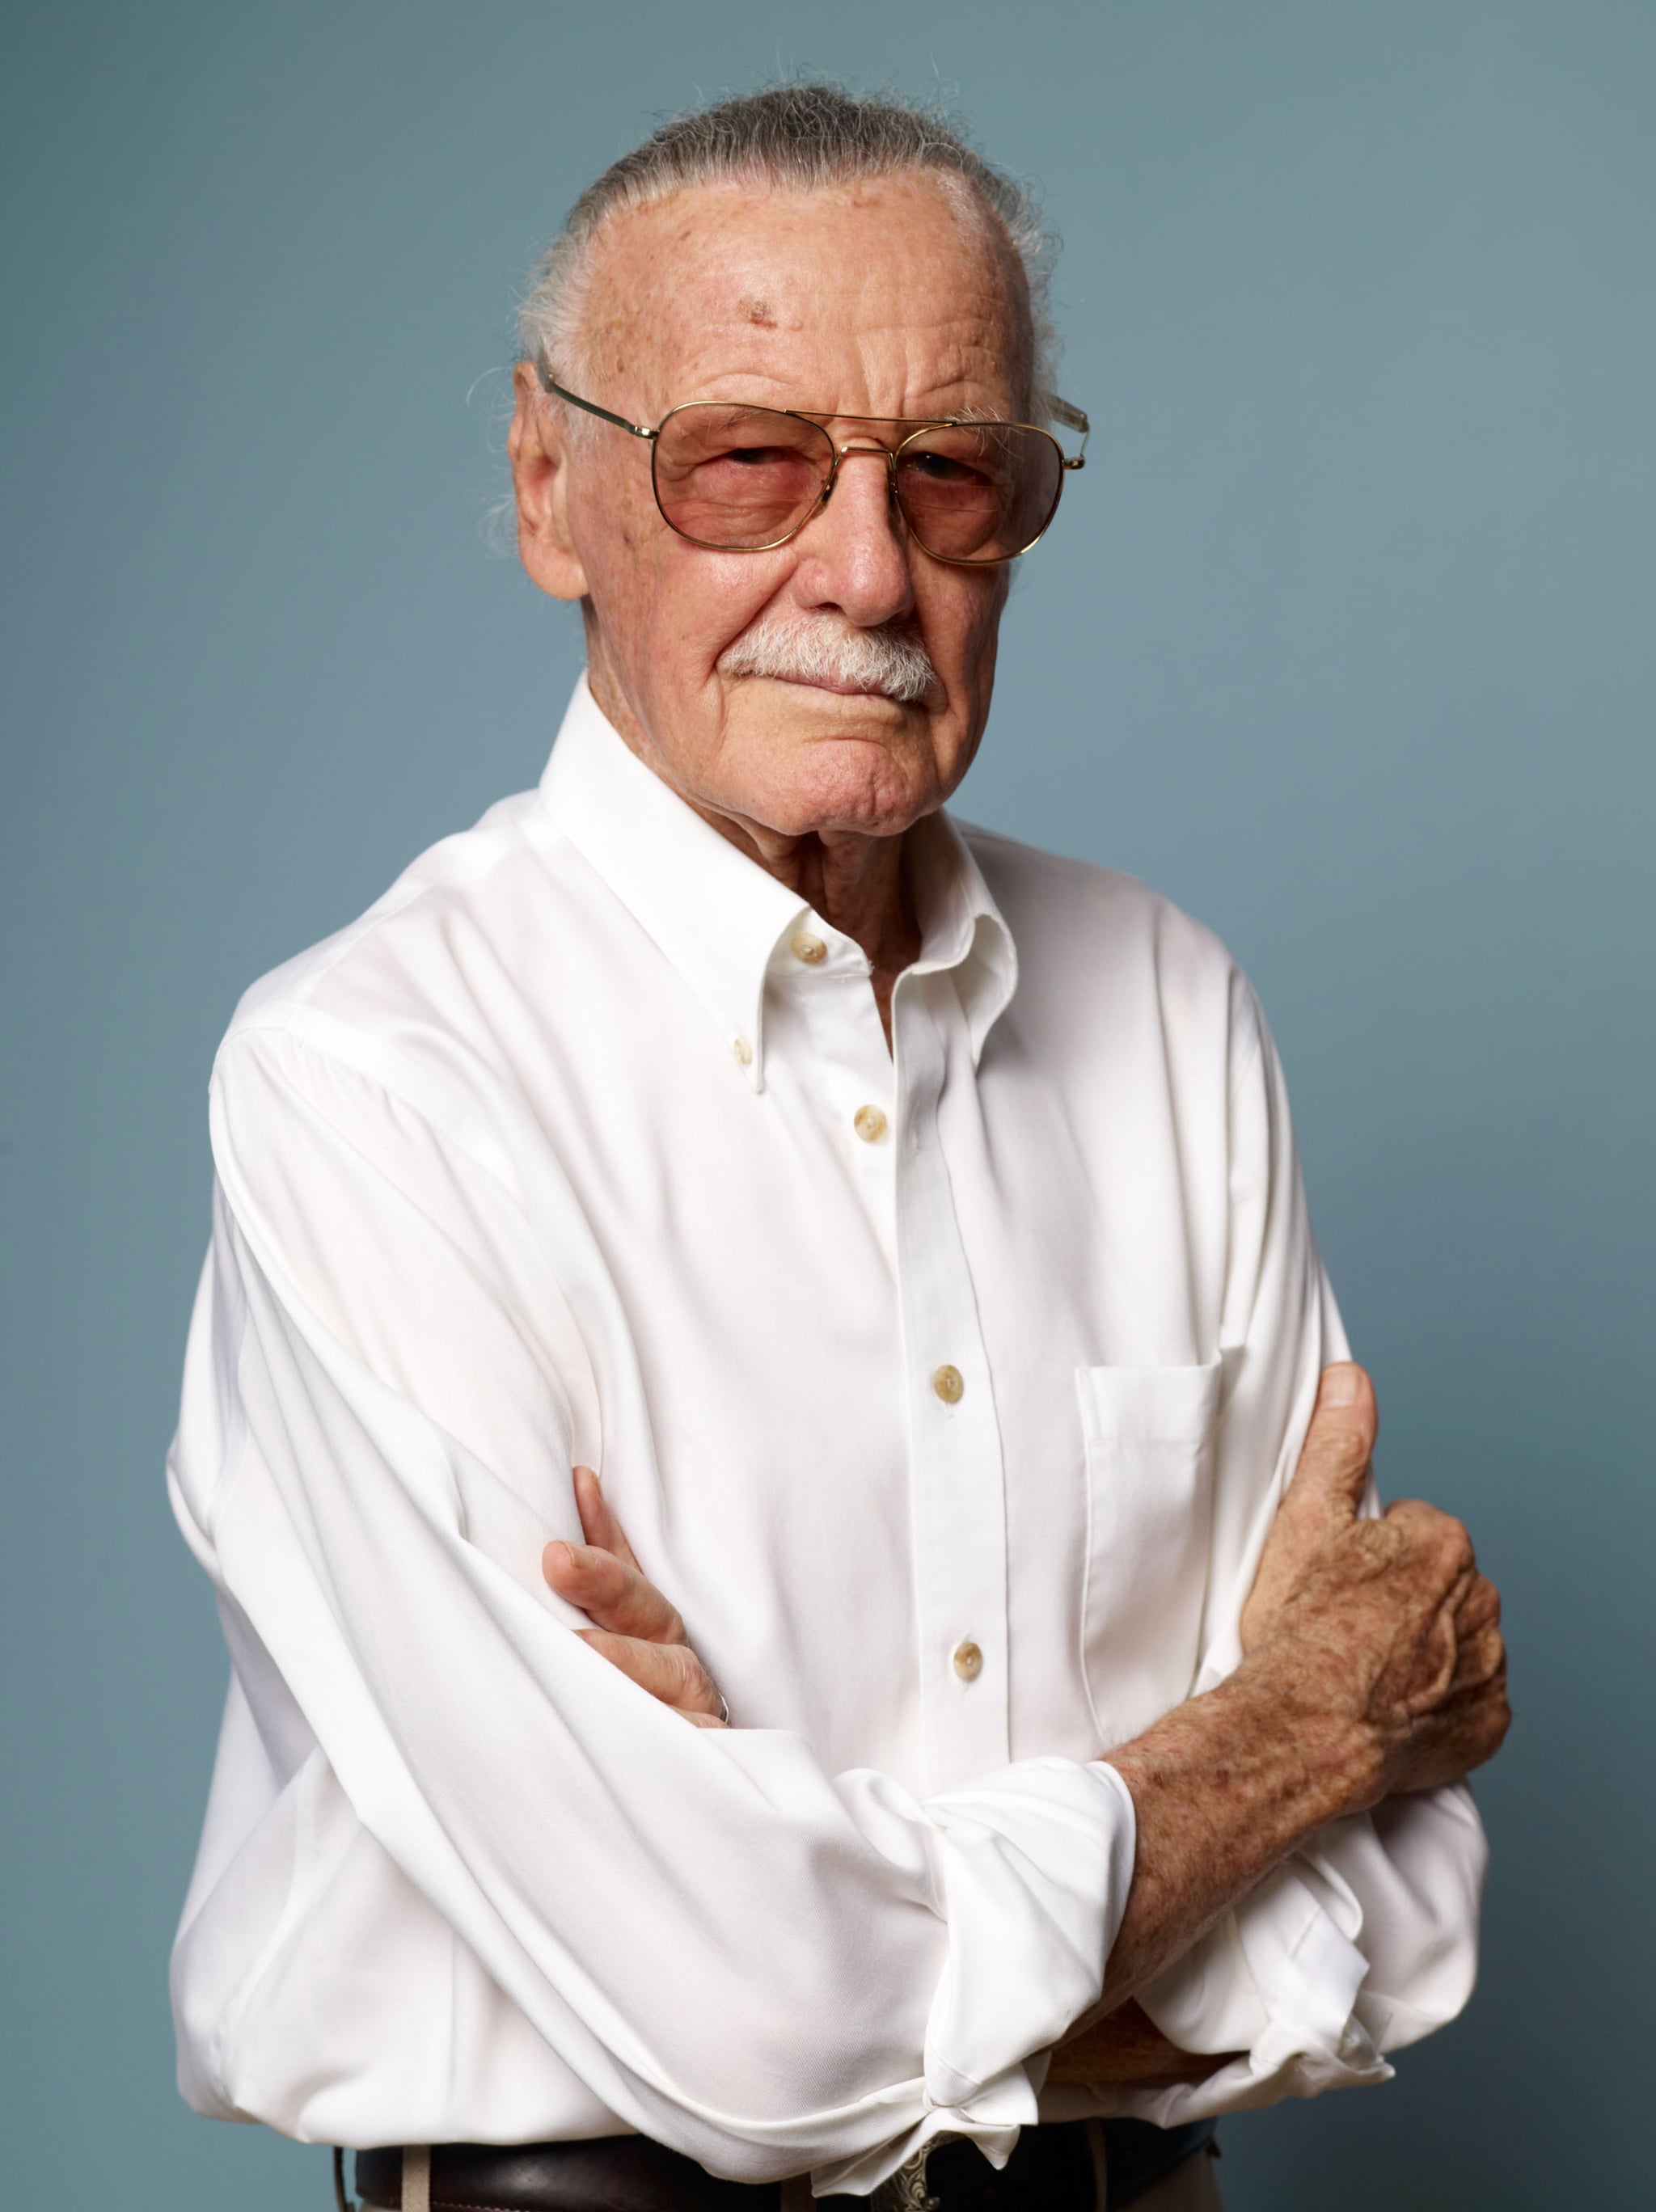 TORONTO, ON - SEPTEMBER 10: Producer Stan Lee of